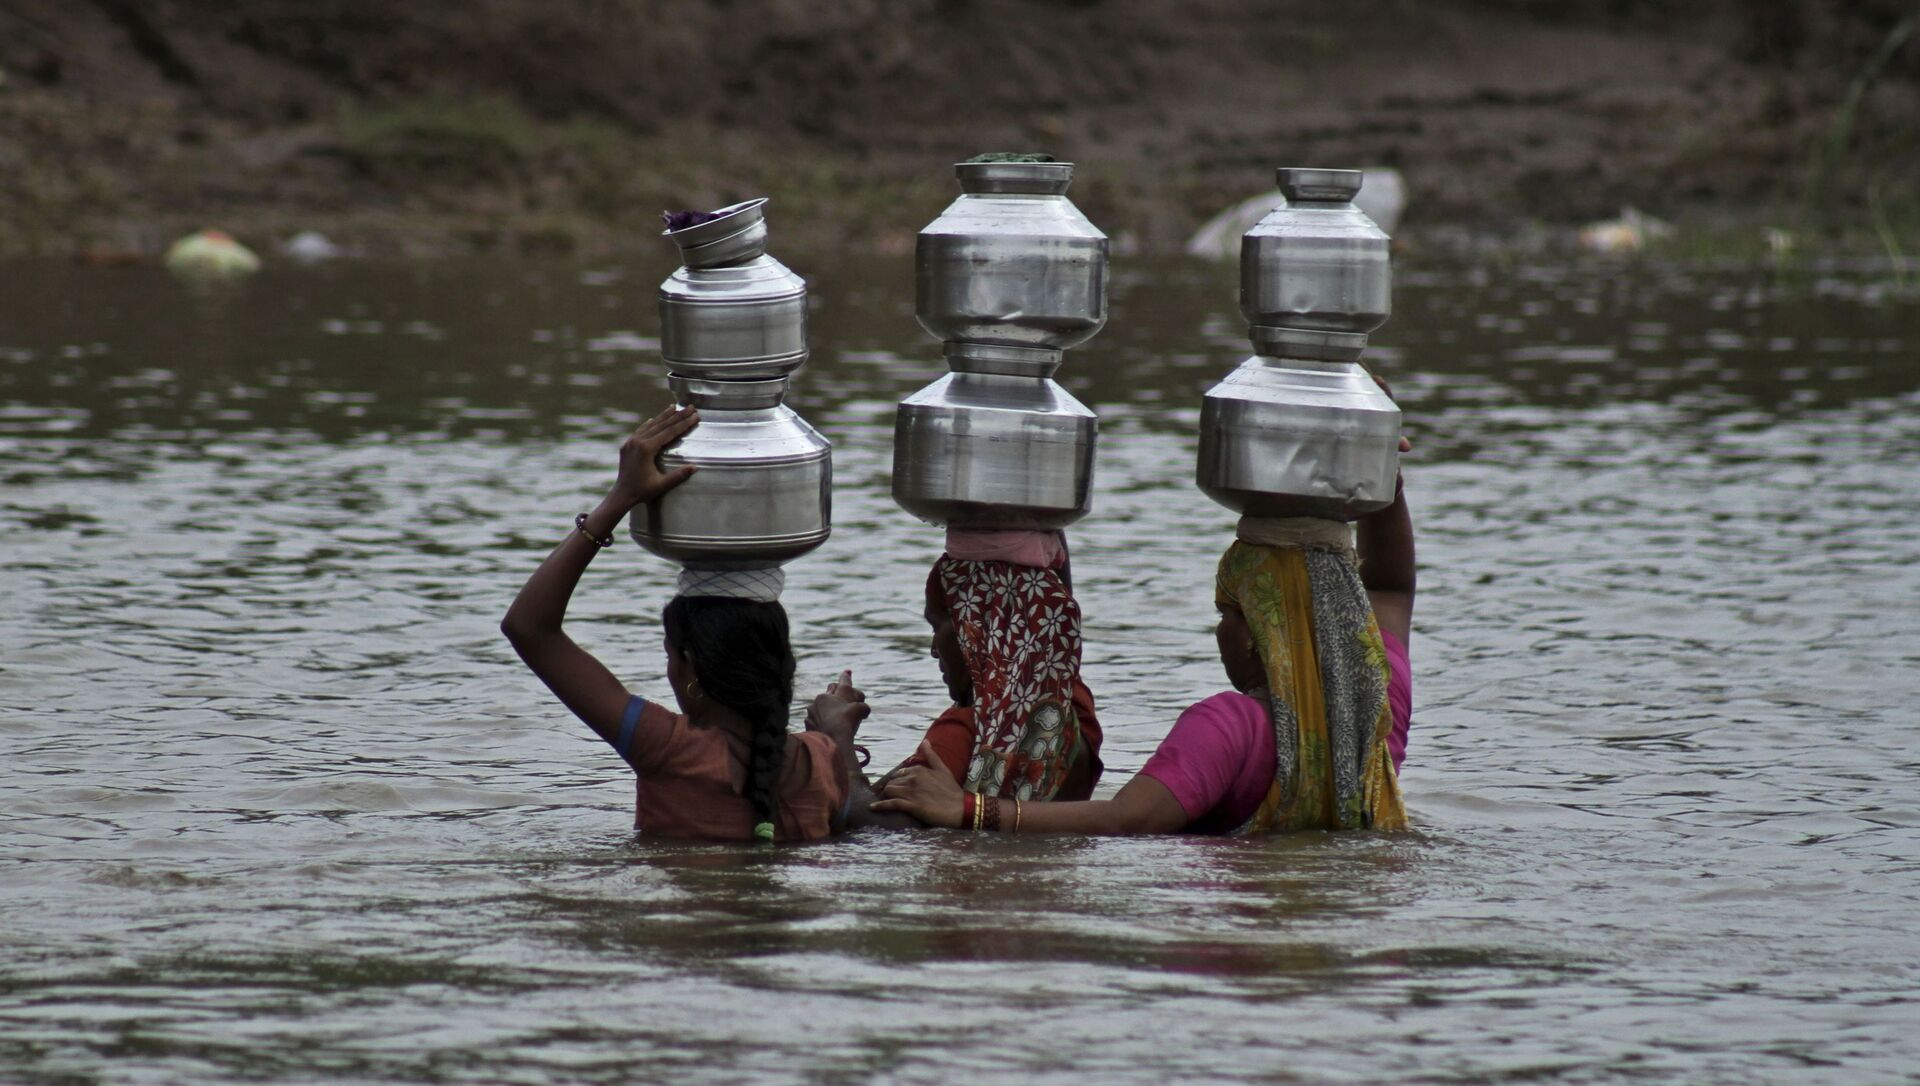 Indian women hold each other as they cross the River Heran after collecting drinking water near Sajanpura village in Chhota Udepur district of Gujarat state, India, Tuesday, Aug. 5, 2014 - Sputnik International, 1920, 18.06.2021